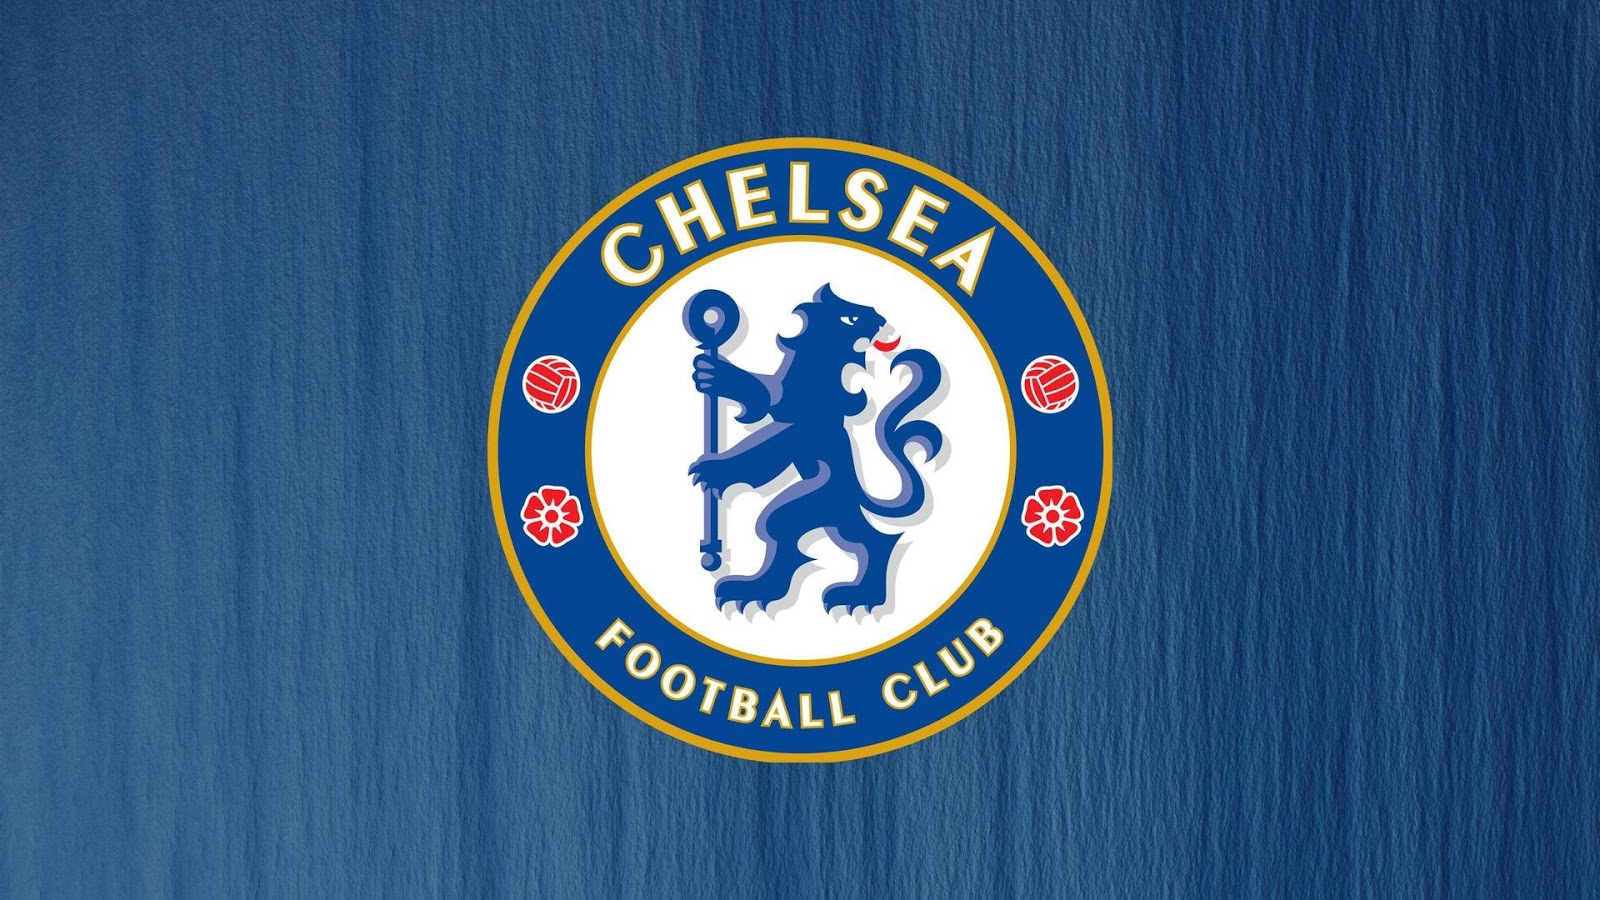 Chelsea Fc: Chelsea Logo Wallpapers HD Collection